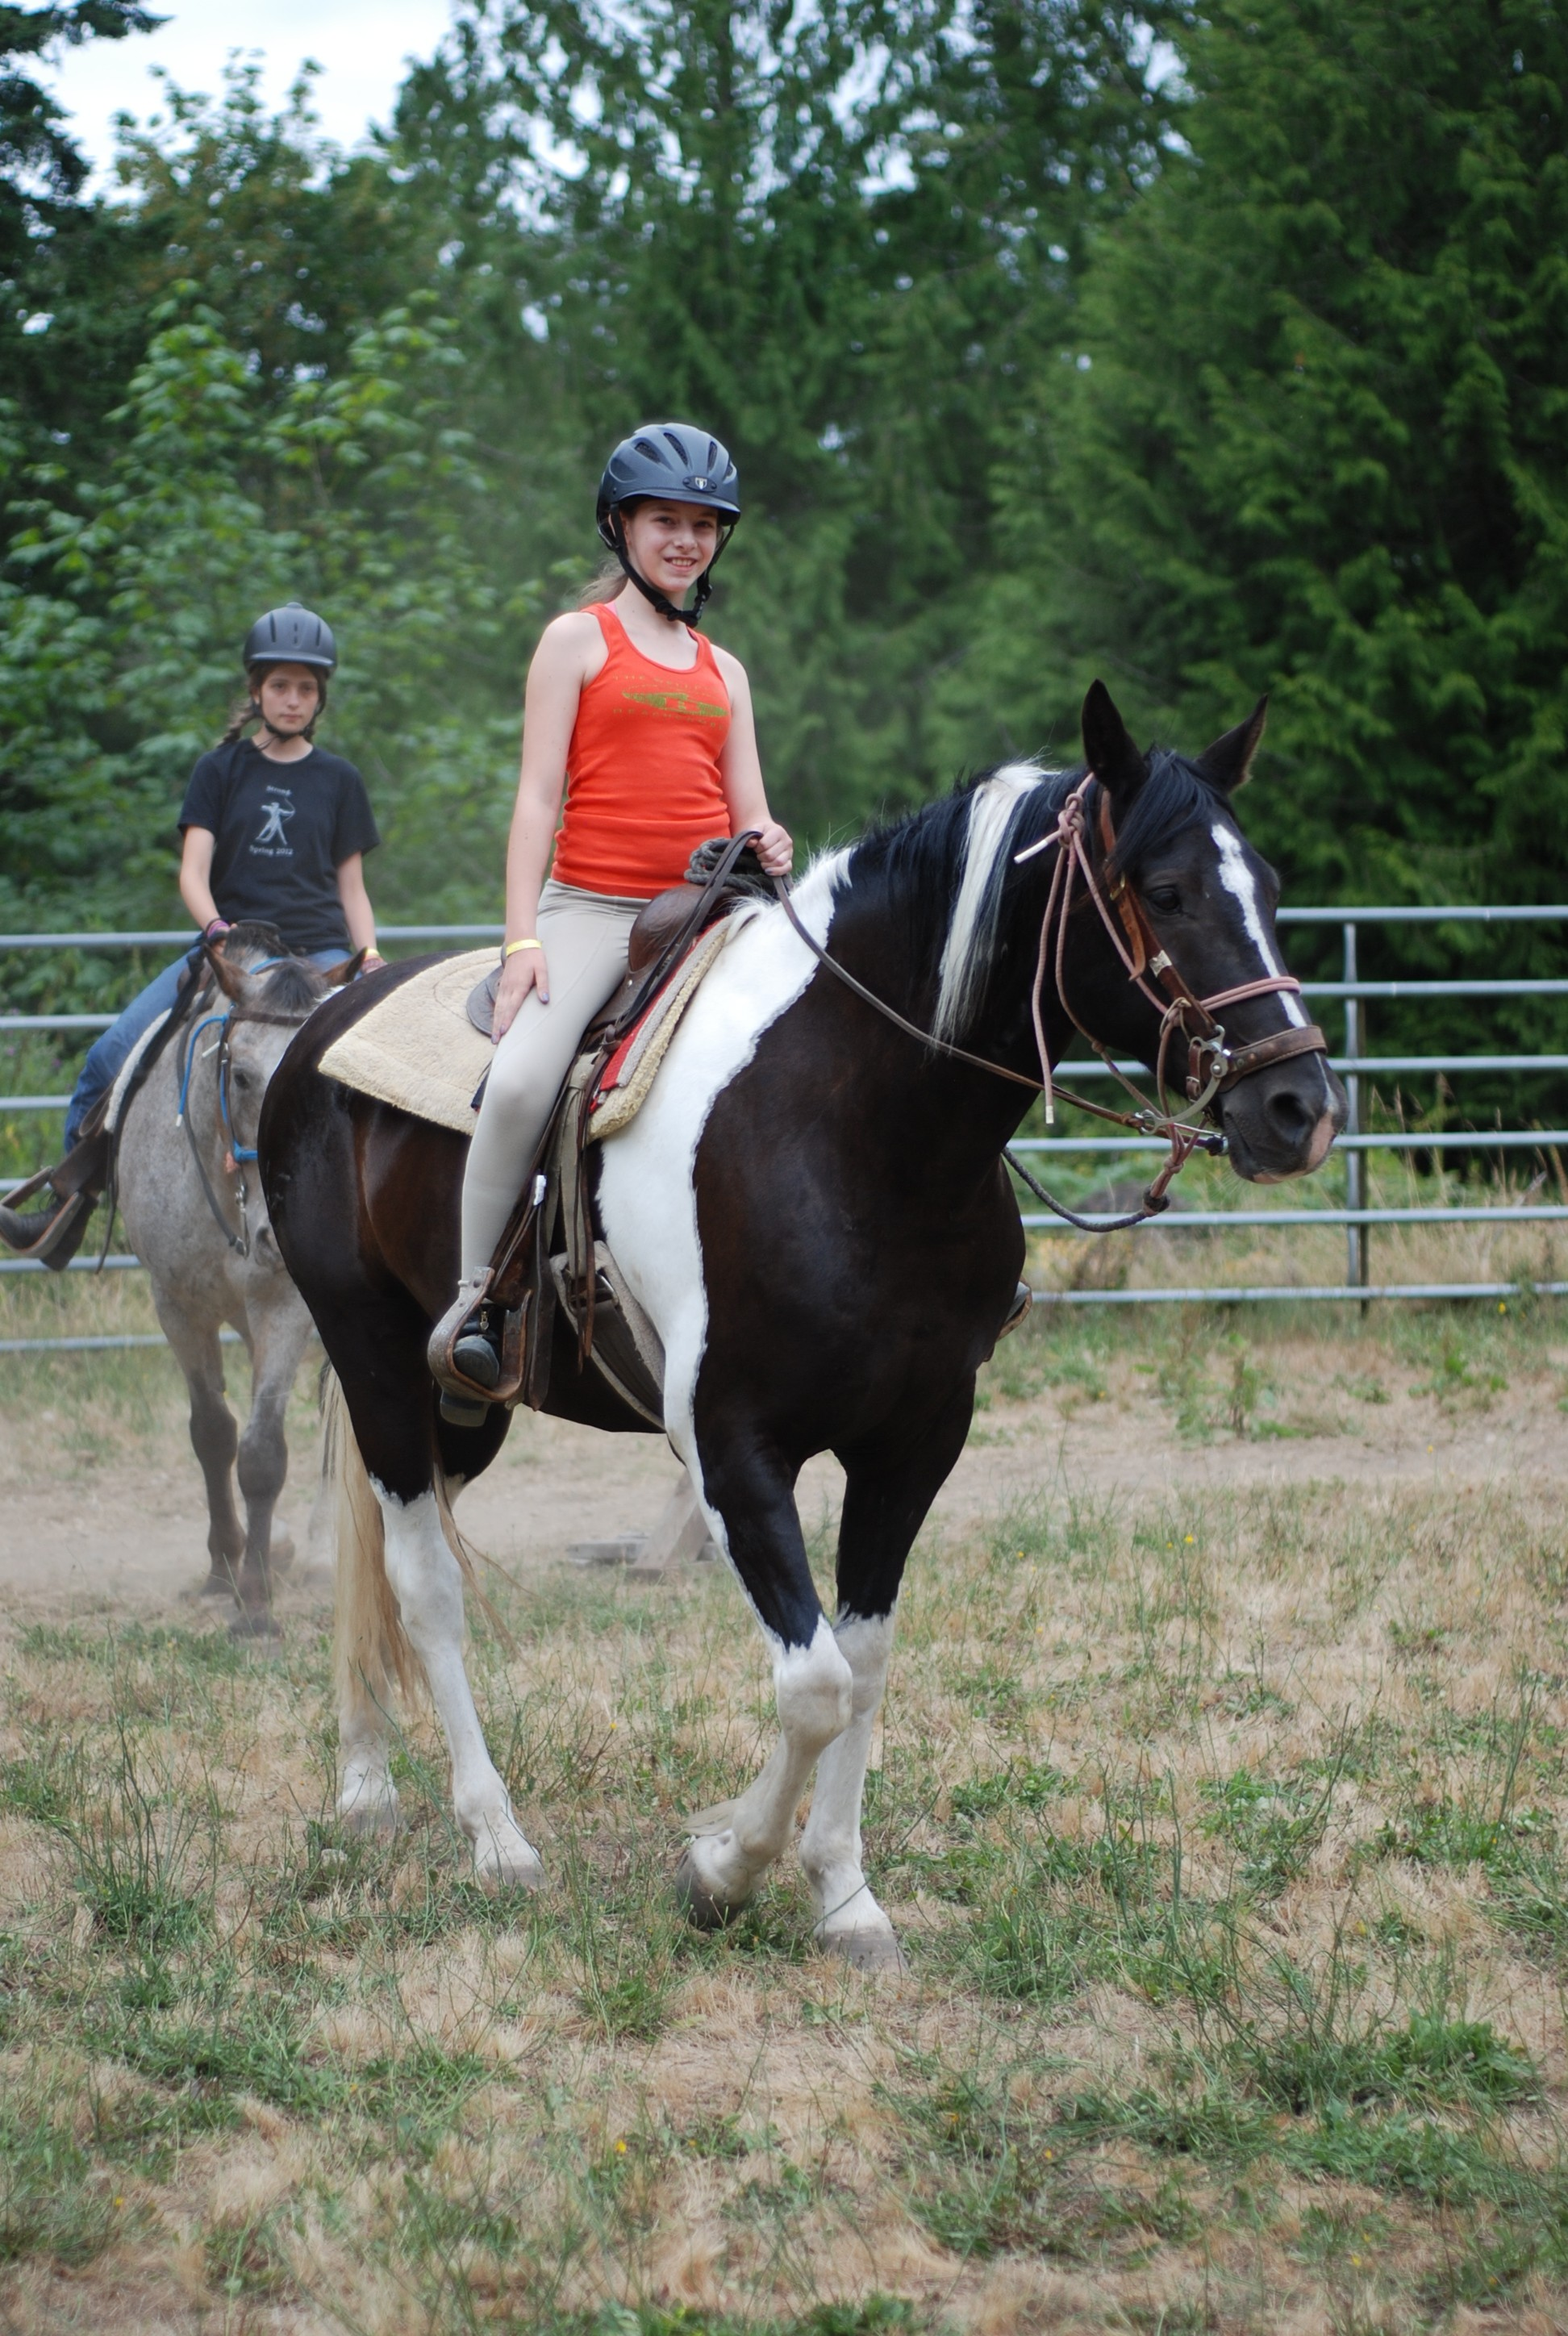 finding a great horse camp 8 tips and 14 horse camps in greater